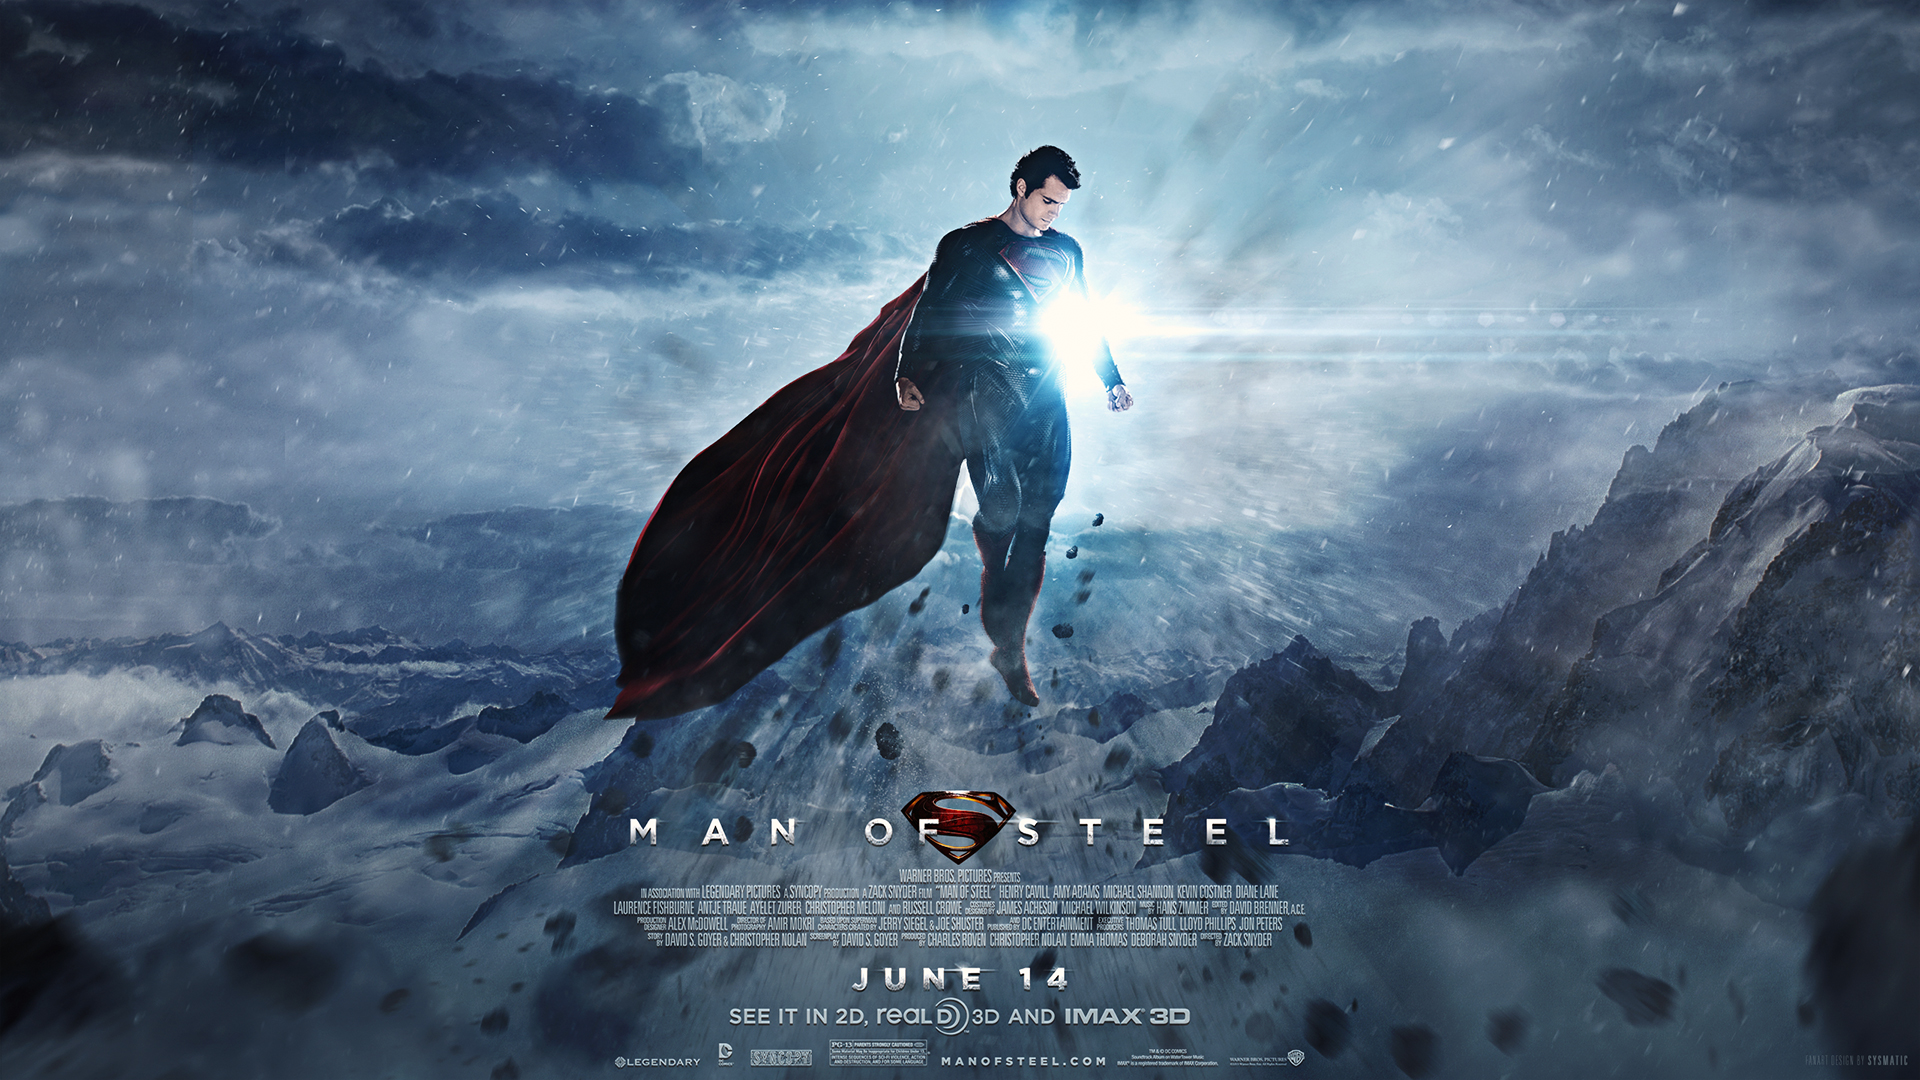 Man of Steel man of steel wallpapersMan Of Steel